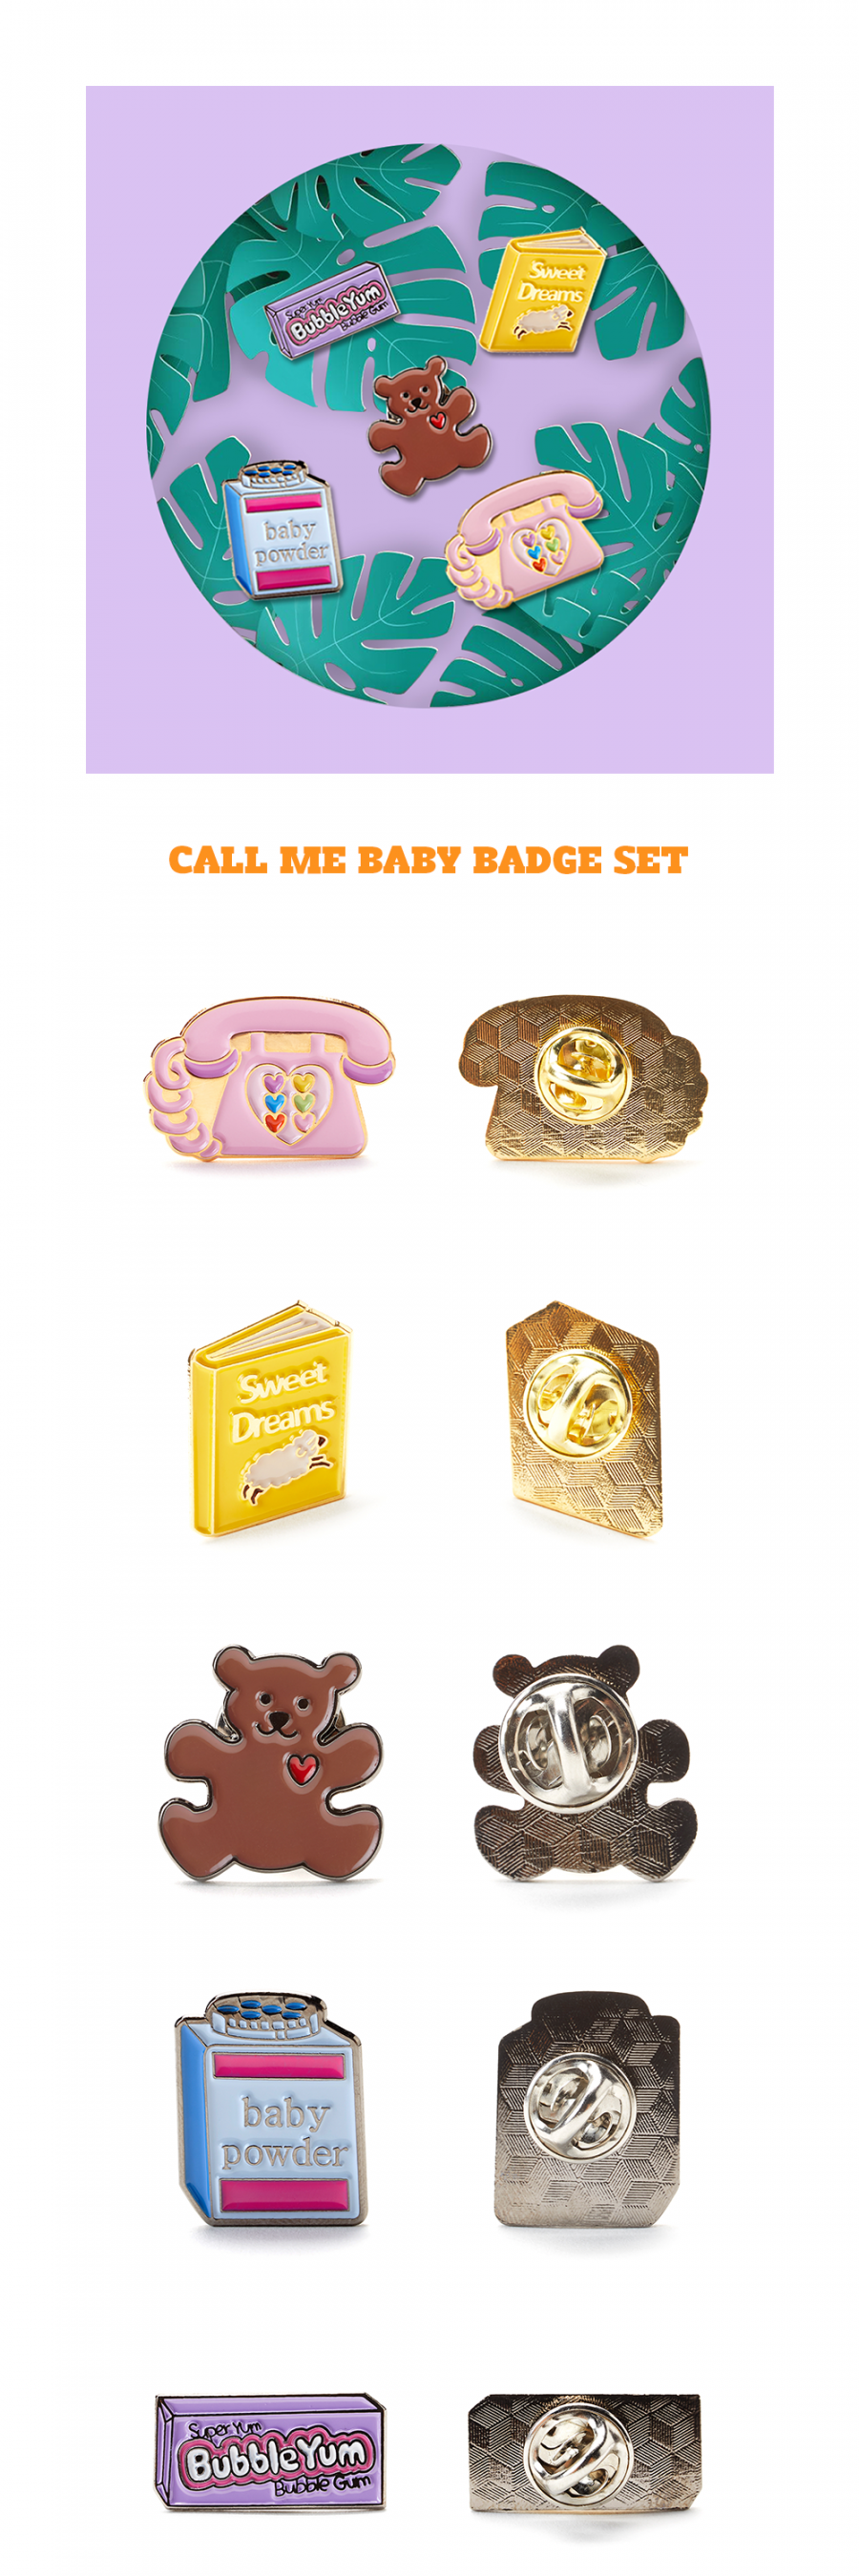 앙트레브(ENTRE REVES) CALL ME BABY BADGE SET